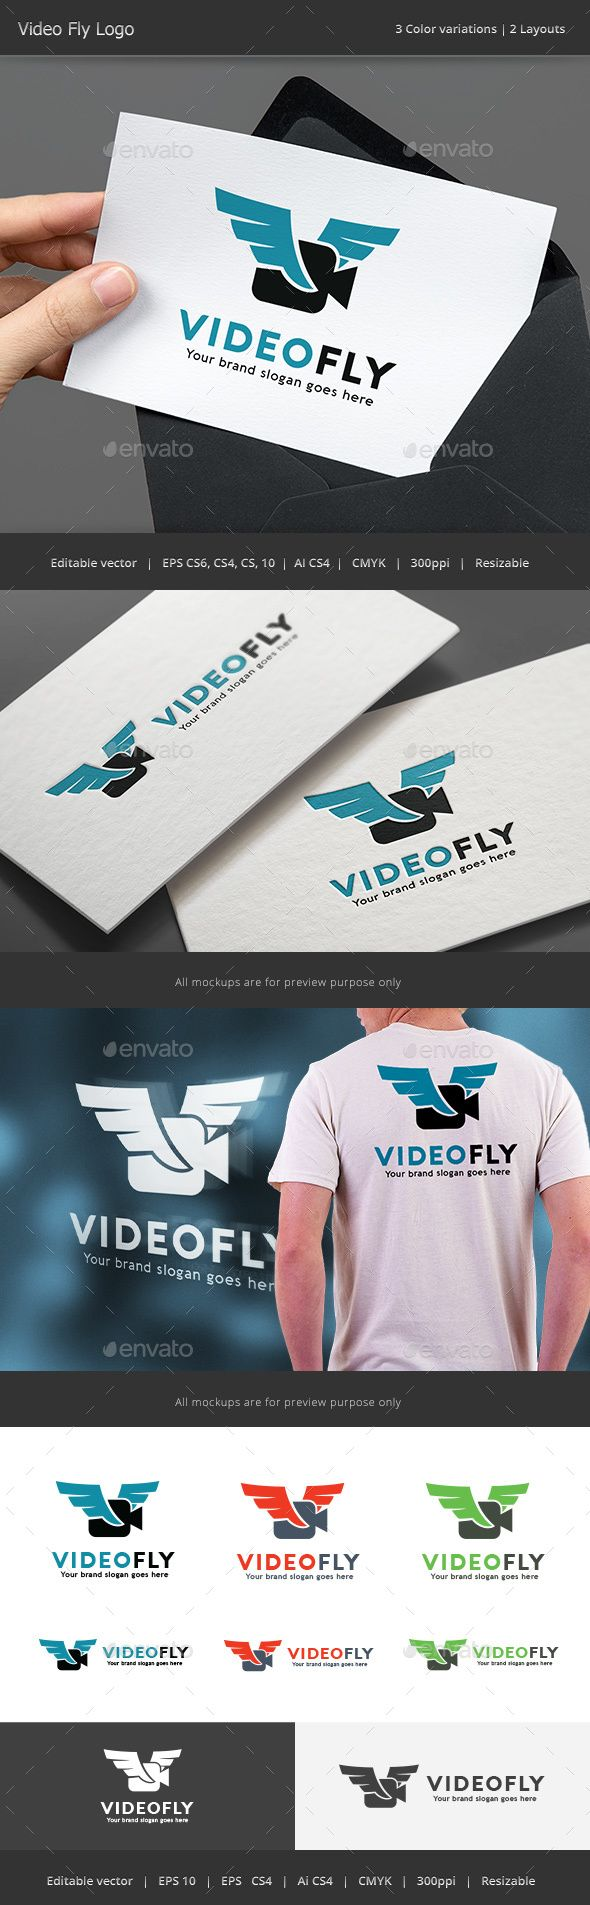 Video Fly Drone Logo by WheelieMonkey Files format : EPS 10, EPS CS, EPS CS4, EPS CS6, AI CS4 Color mode : CMYK Resolution : 300PPI Resizable Free font used: Aquaw